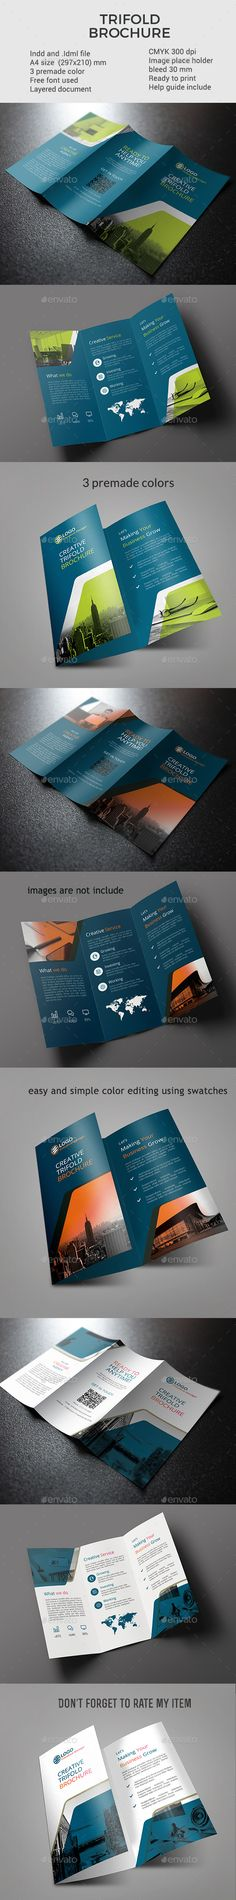 Corporate Trifold Brochure vol 5  InDesign Template • Download ➝ https://graphicriver.net/item/corporate-trifold-brochure-vol-5/17021531?ref=pxcr